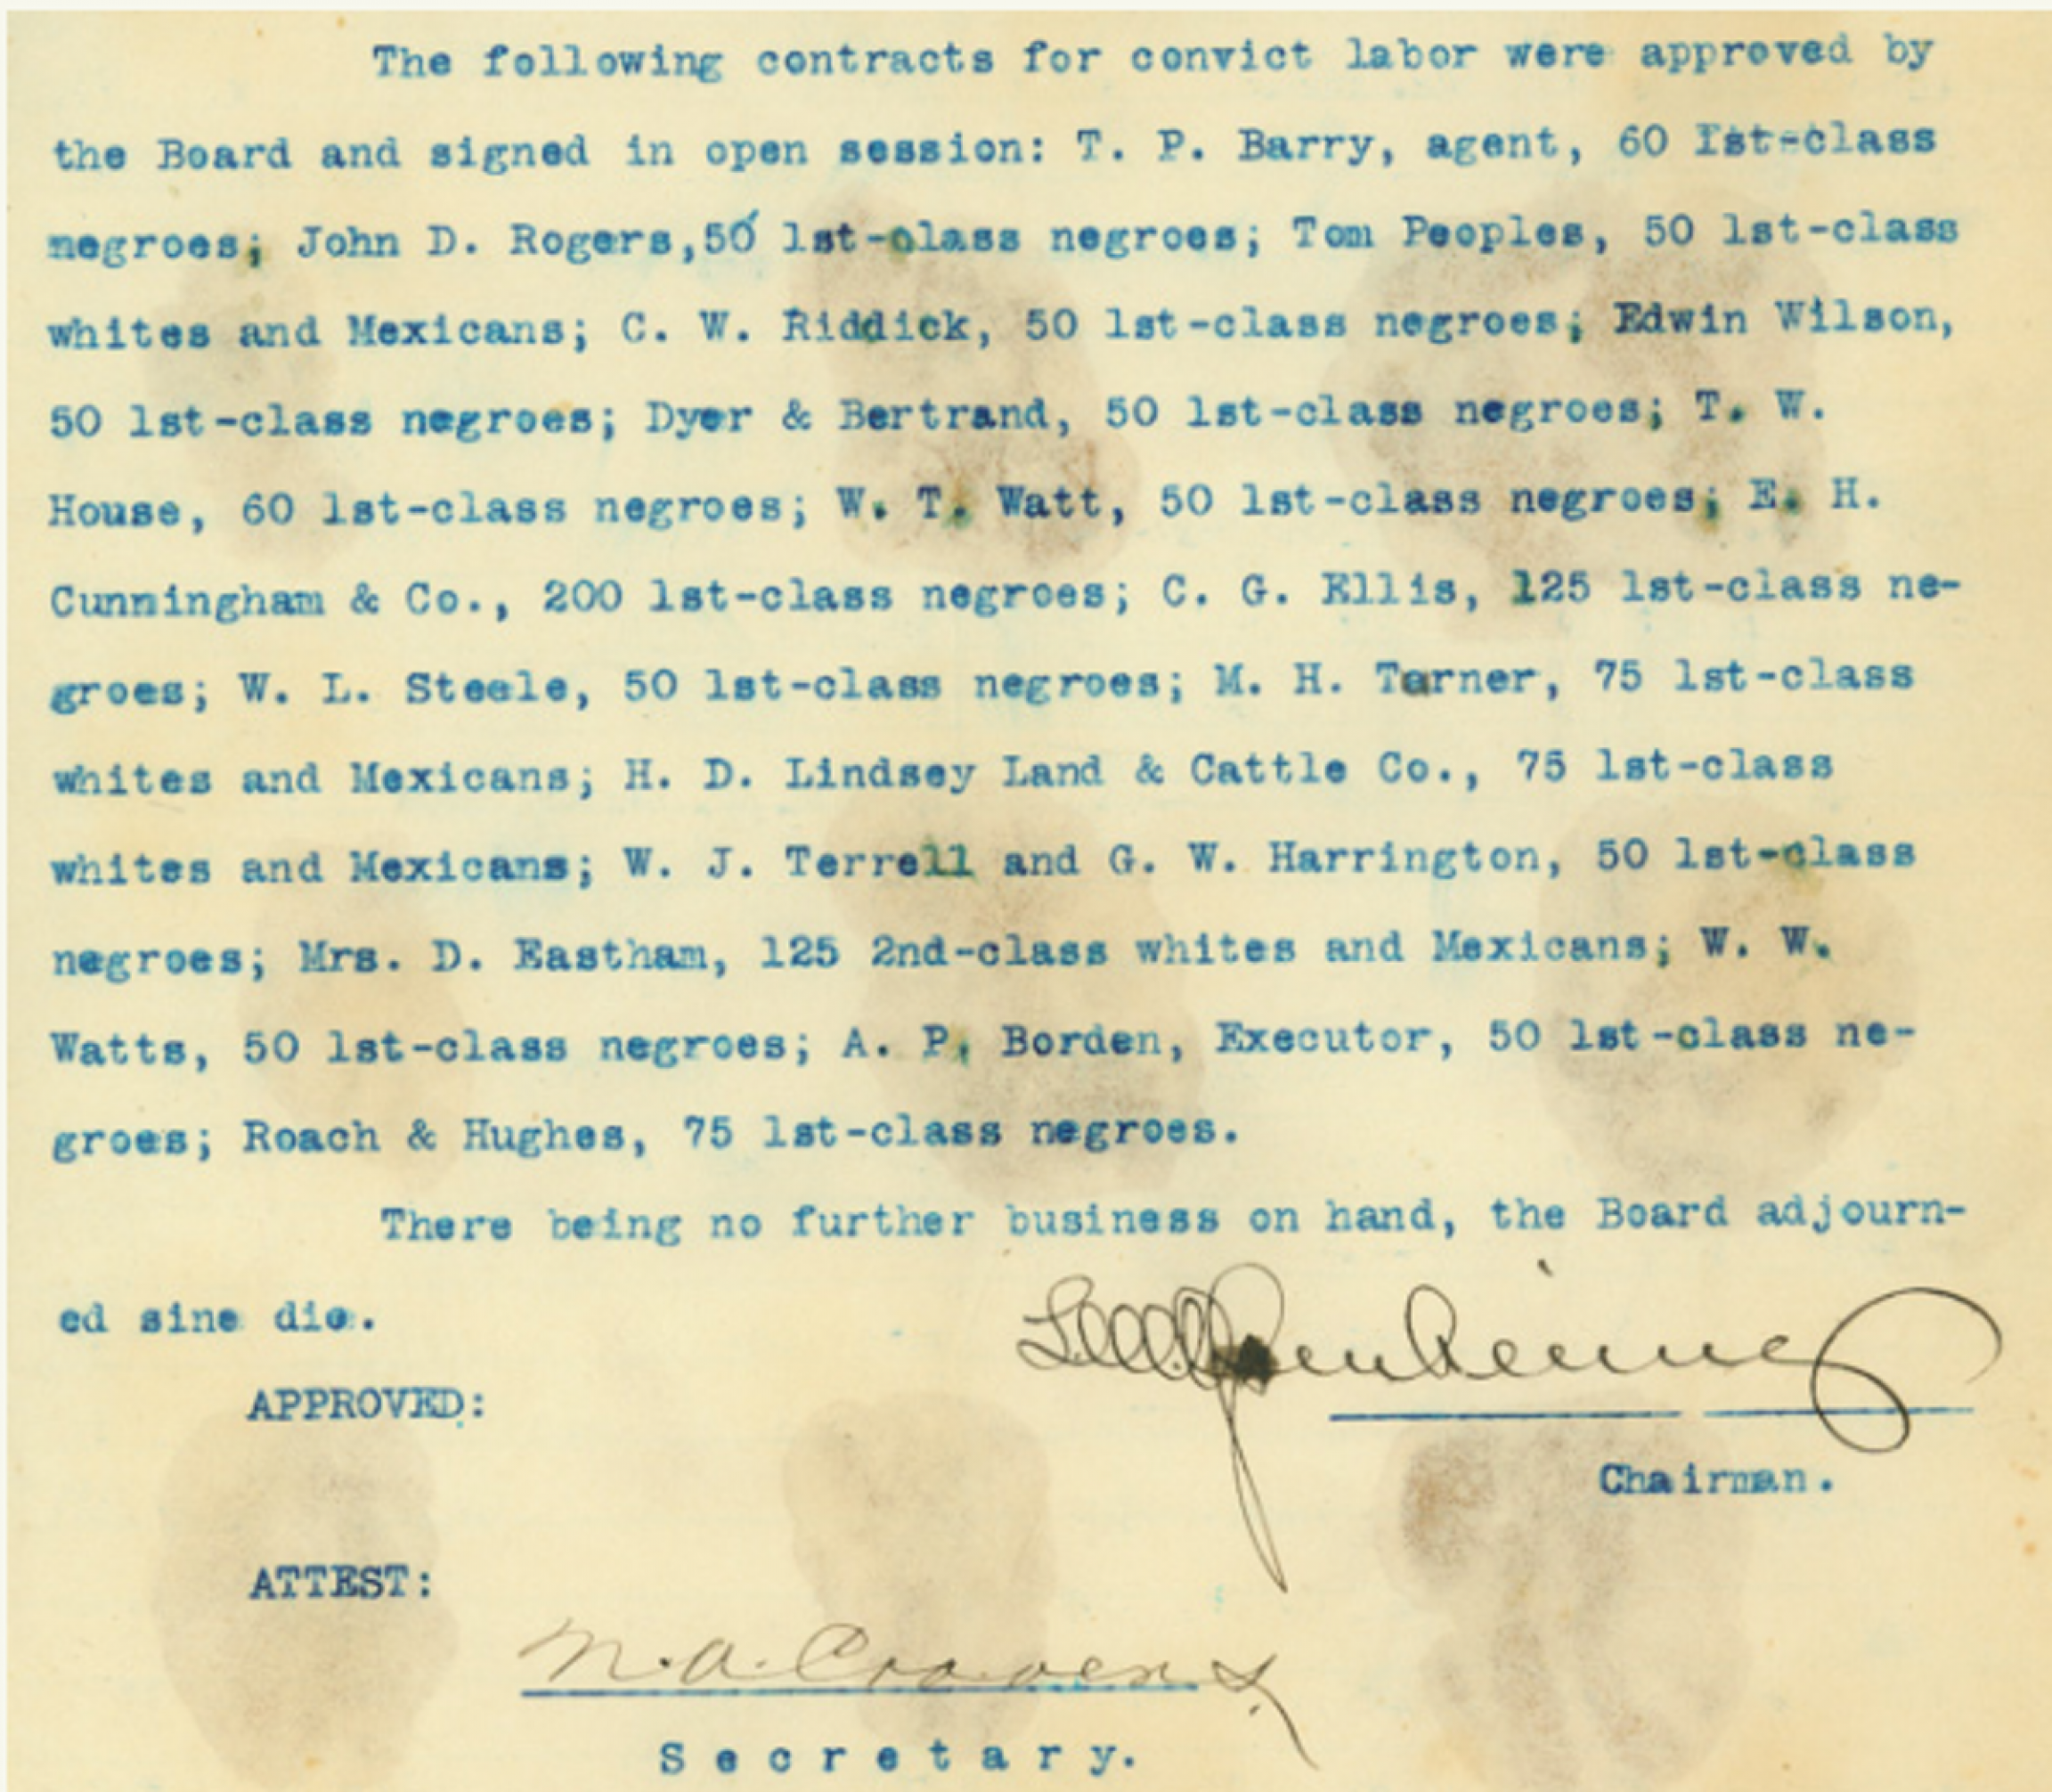 Excerpt from minutes of the regular meeting of the Texas Penitentiary Board, Nov. 12, 1903.